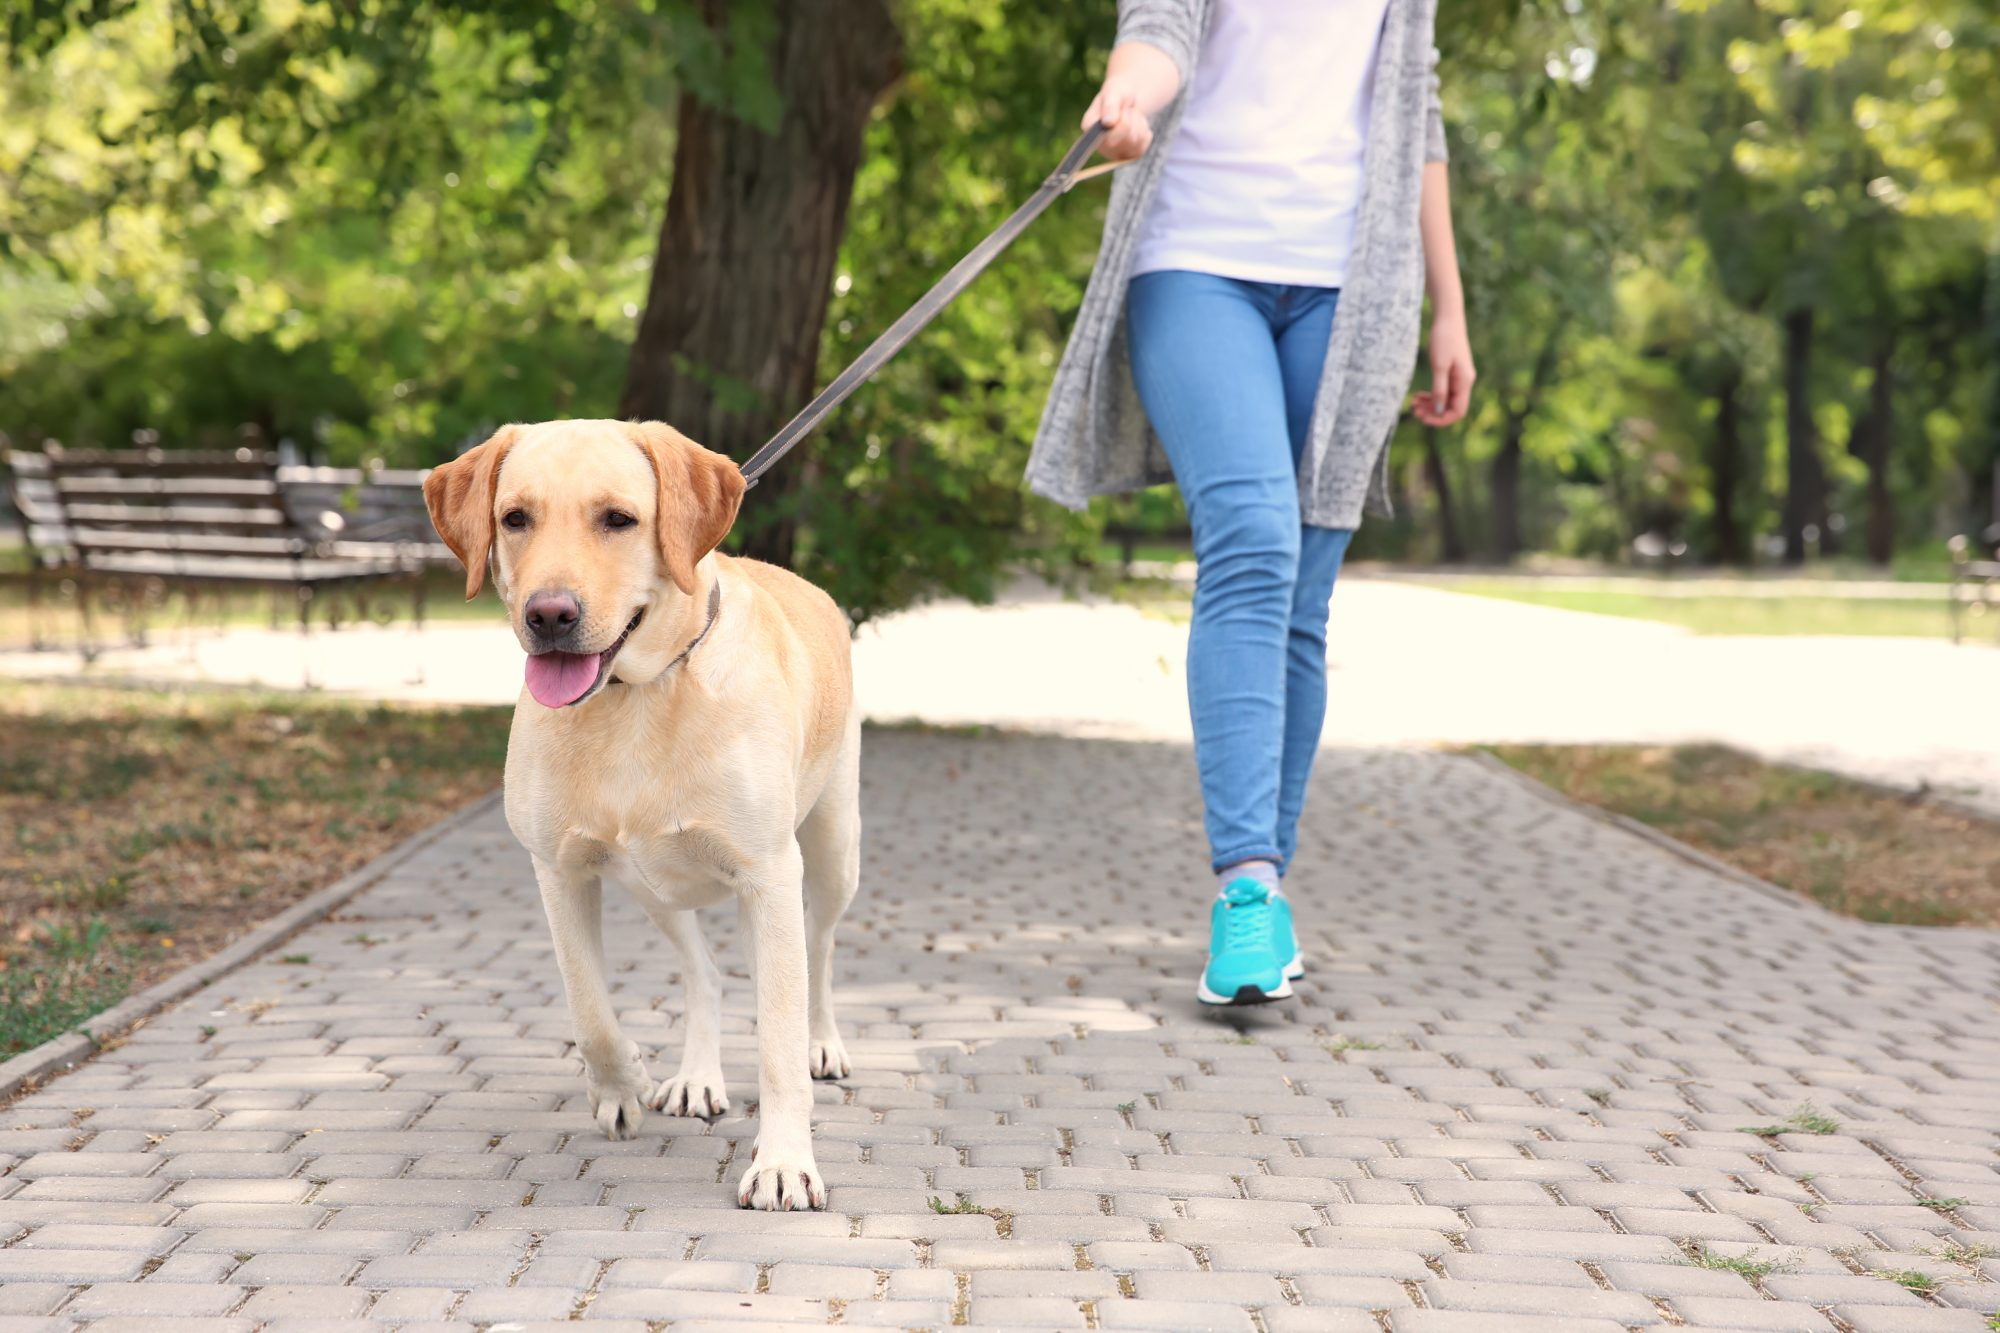 A person walks a yellow lab along a brick path, within a park setting.